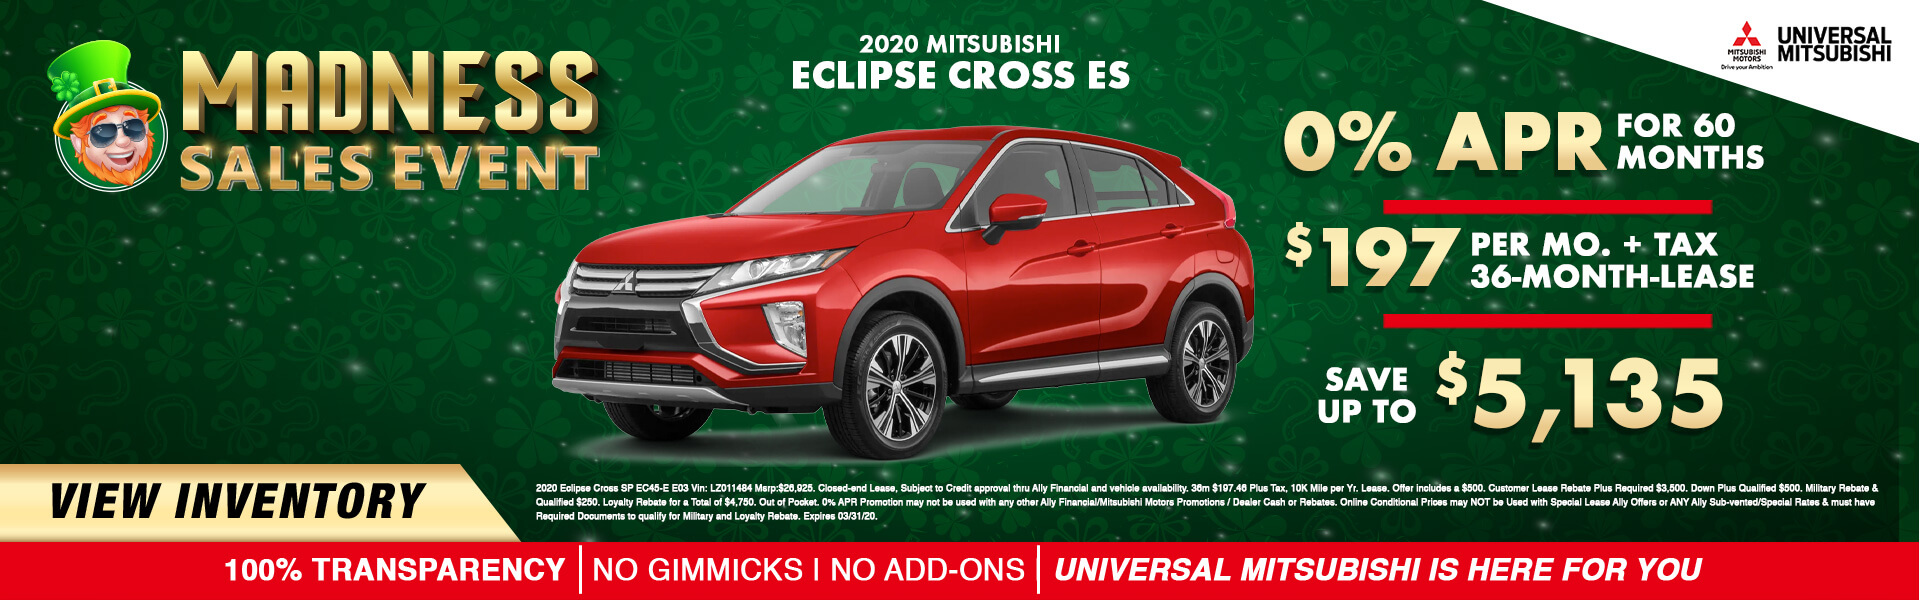 2019 Mitsubishi Eclipse Cross 0% APR